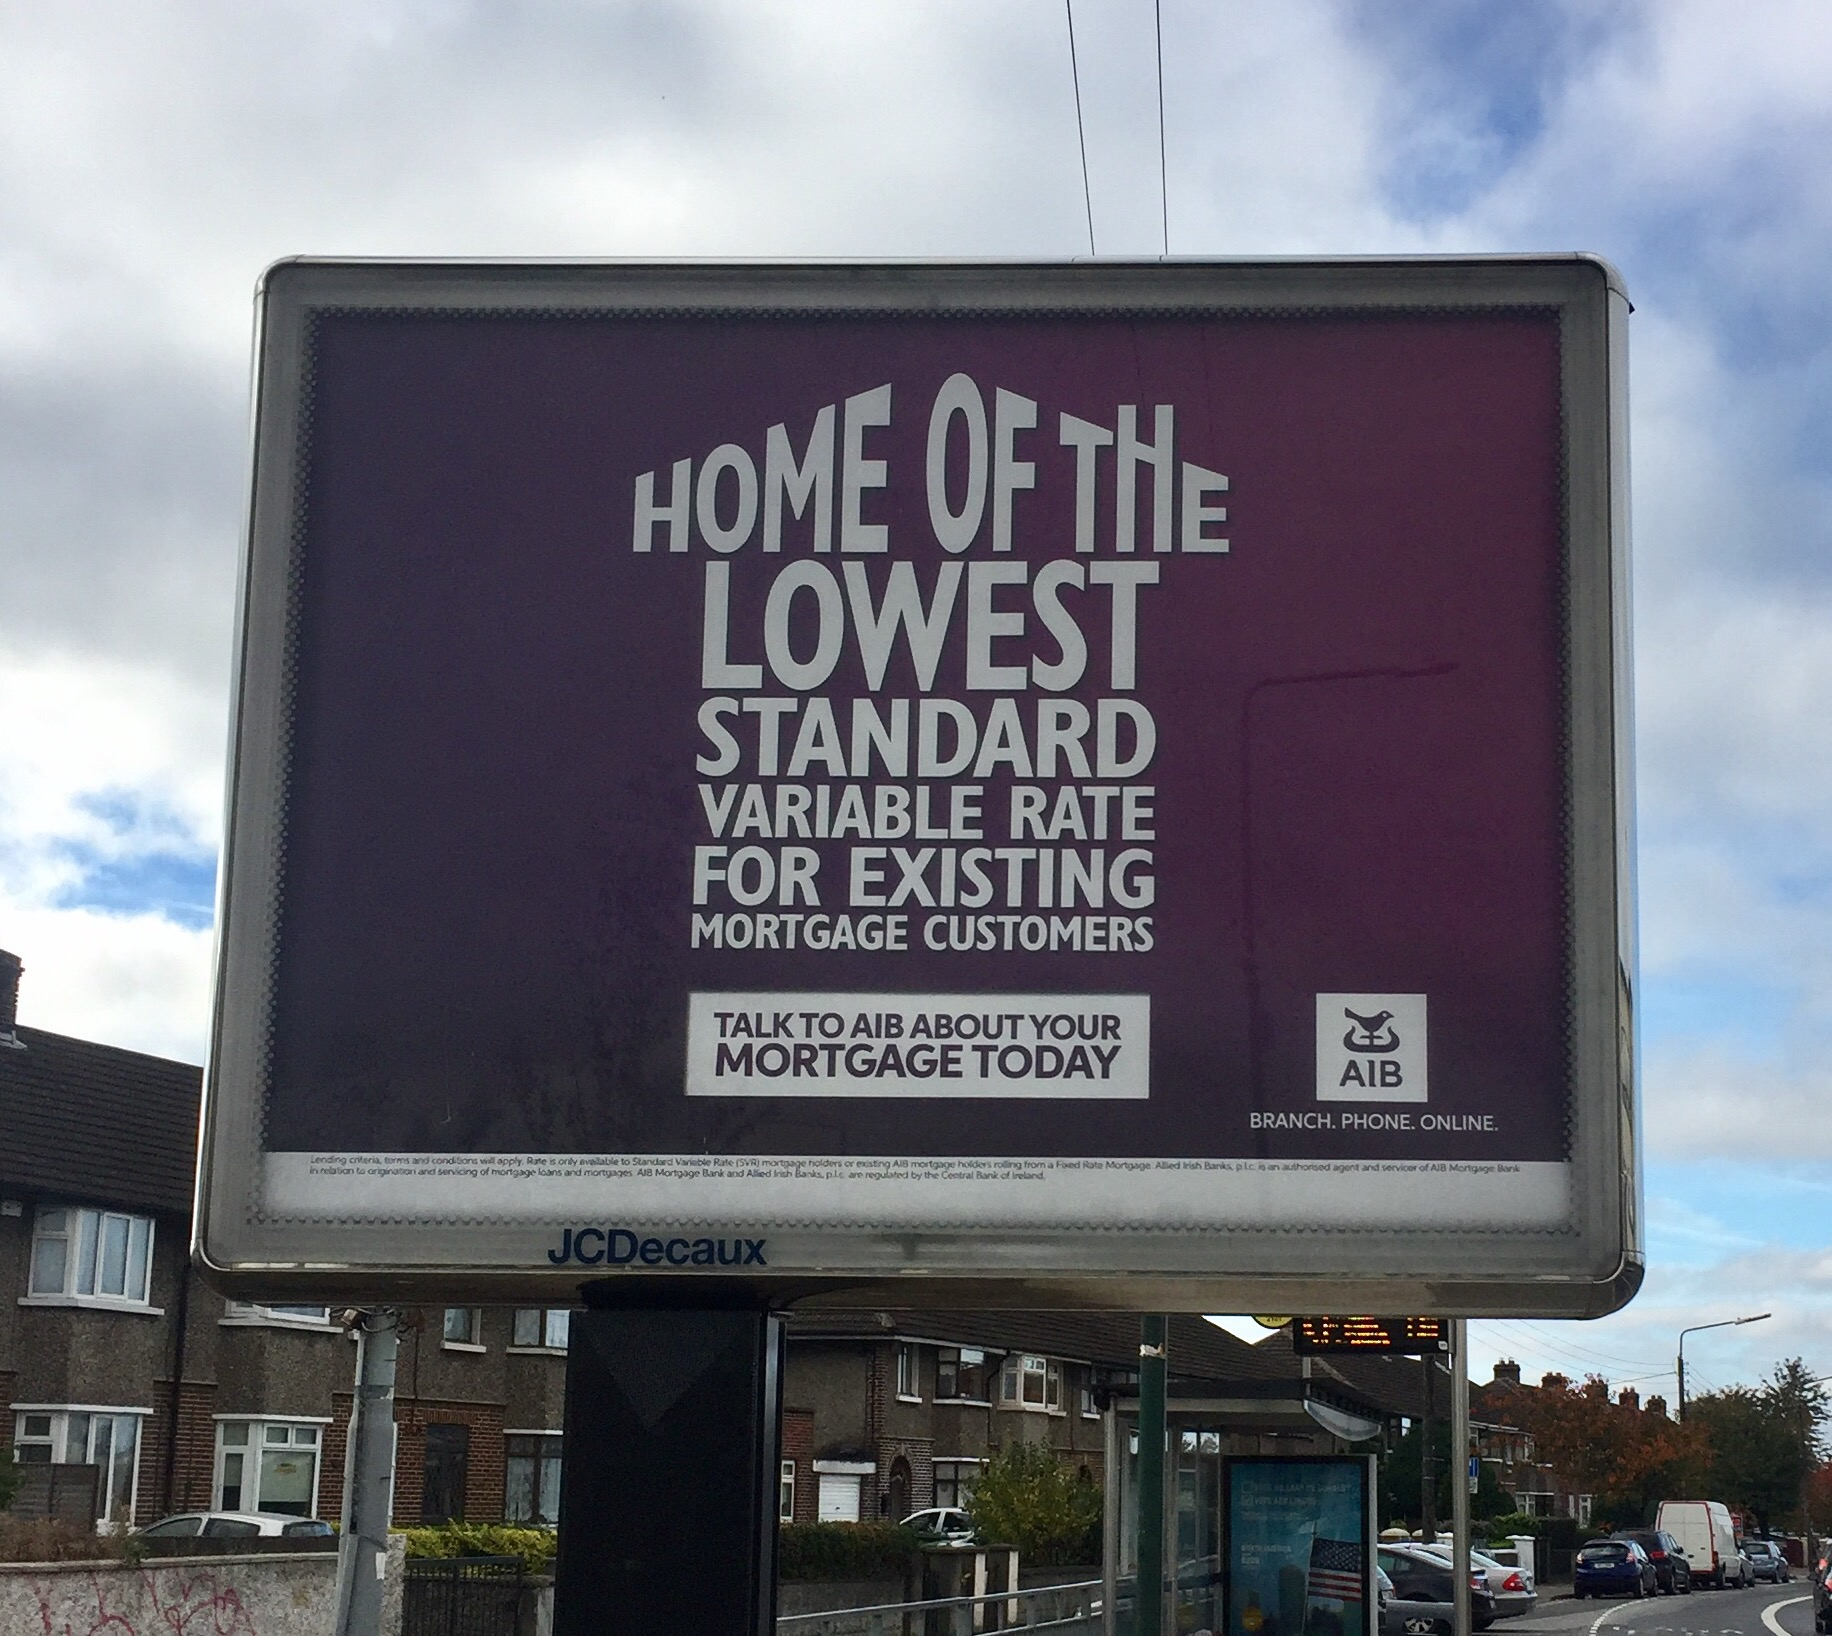 AIB – home of the lowest standard variable rate for existing mortgage customers